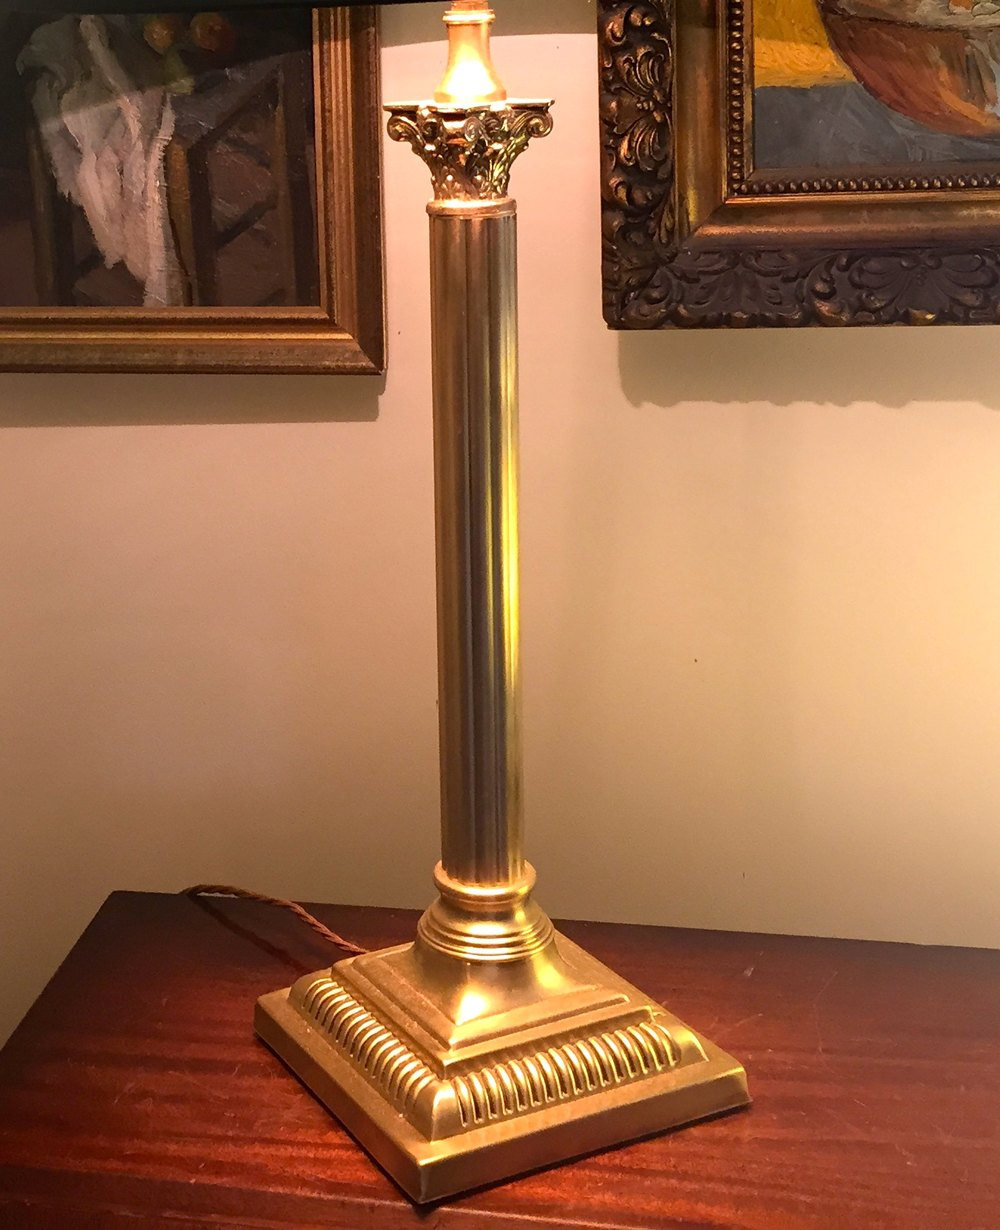 Antiques atlas tall handsome corinthian column desk lamp brass tall handsome corinthian column desk lamp brass antique lighting table lamps geotapseo Choice Image